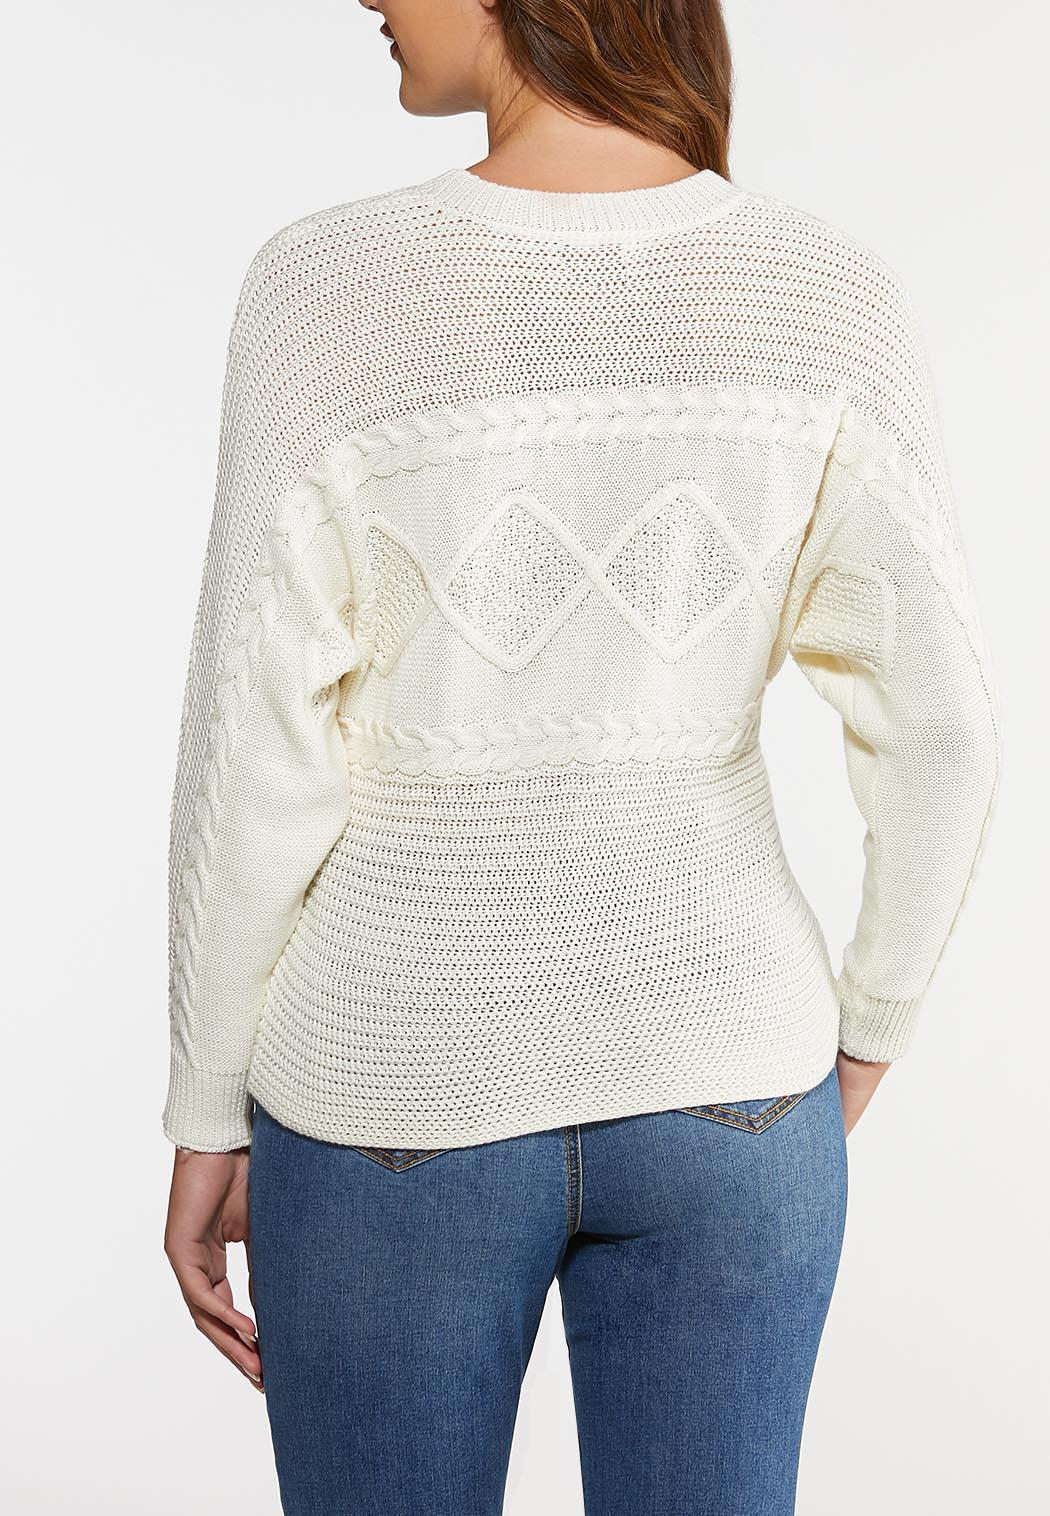 Ivory Cable Stitch Sweater (Item #43999607)